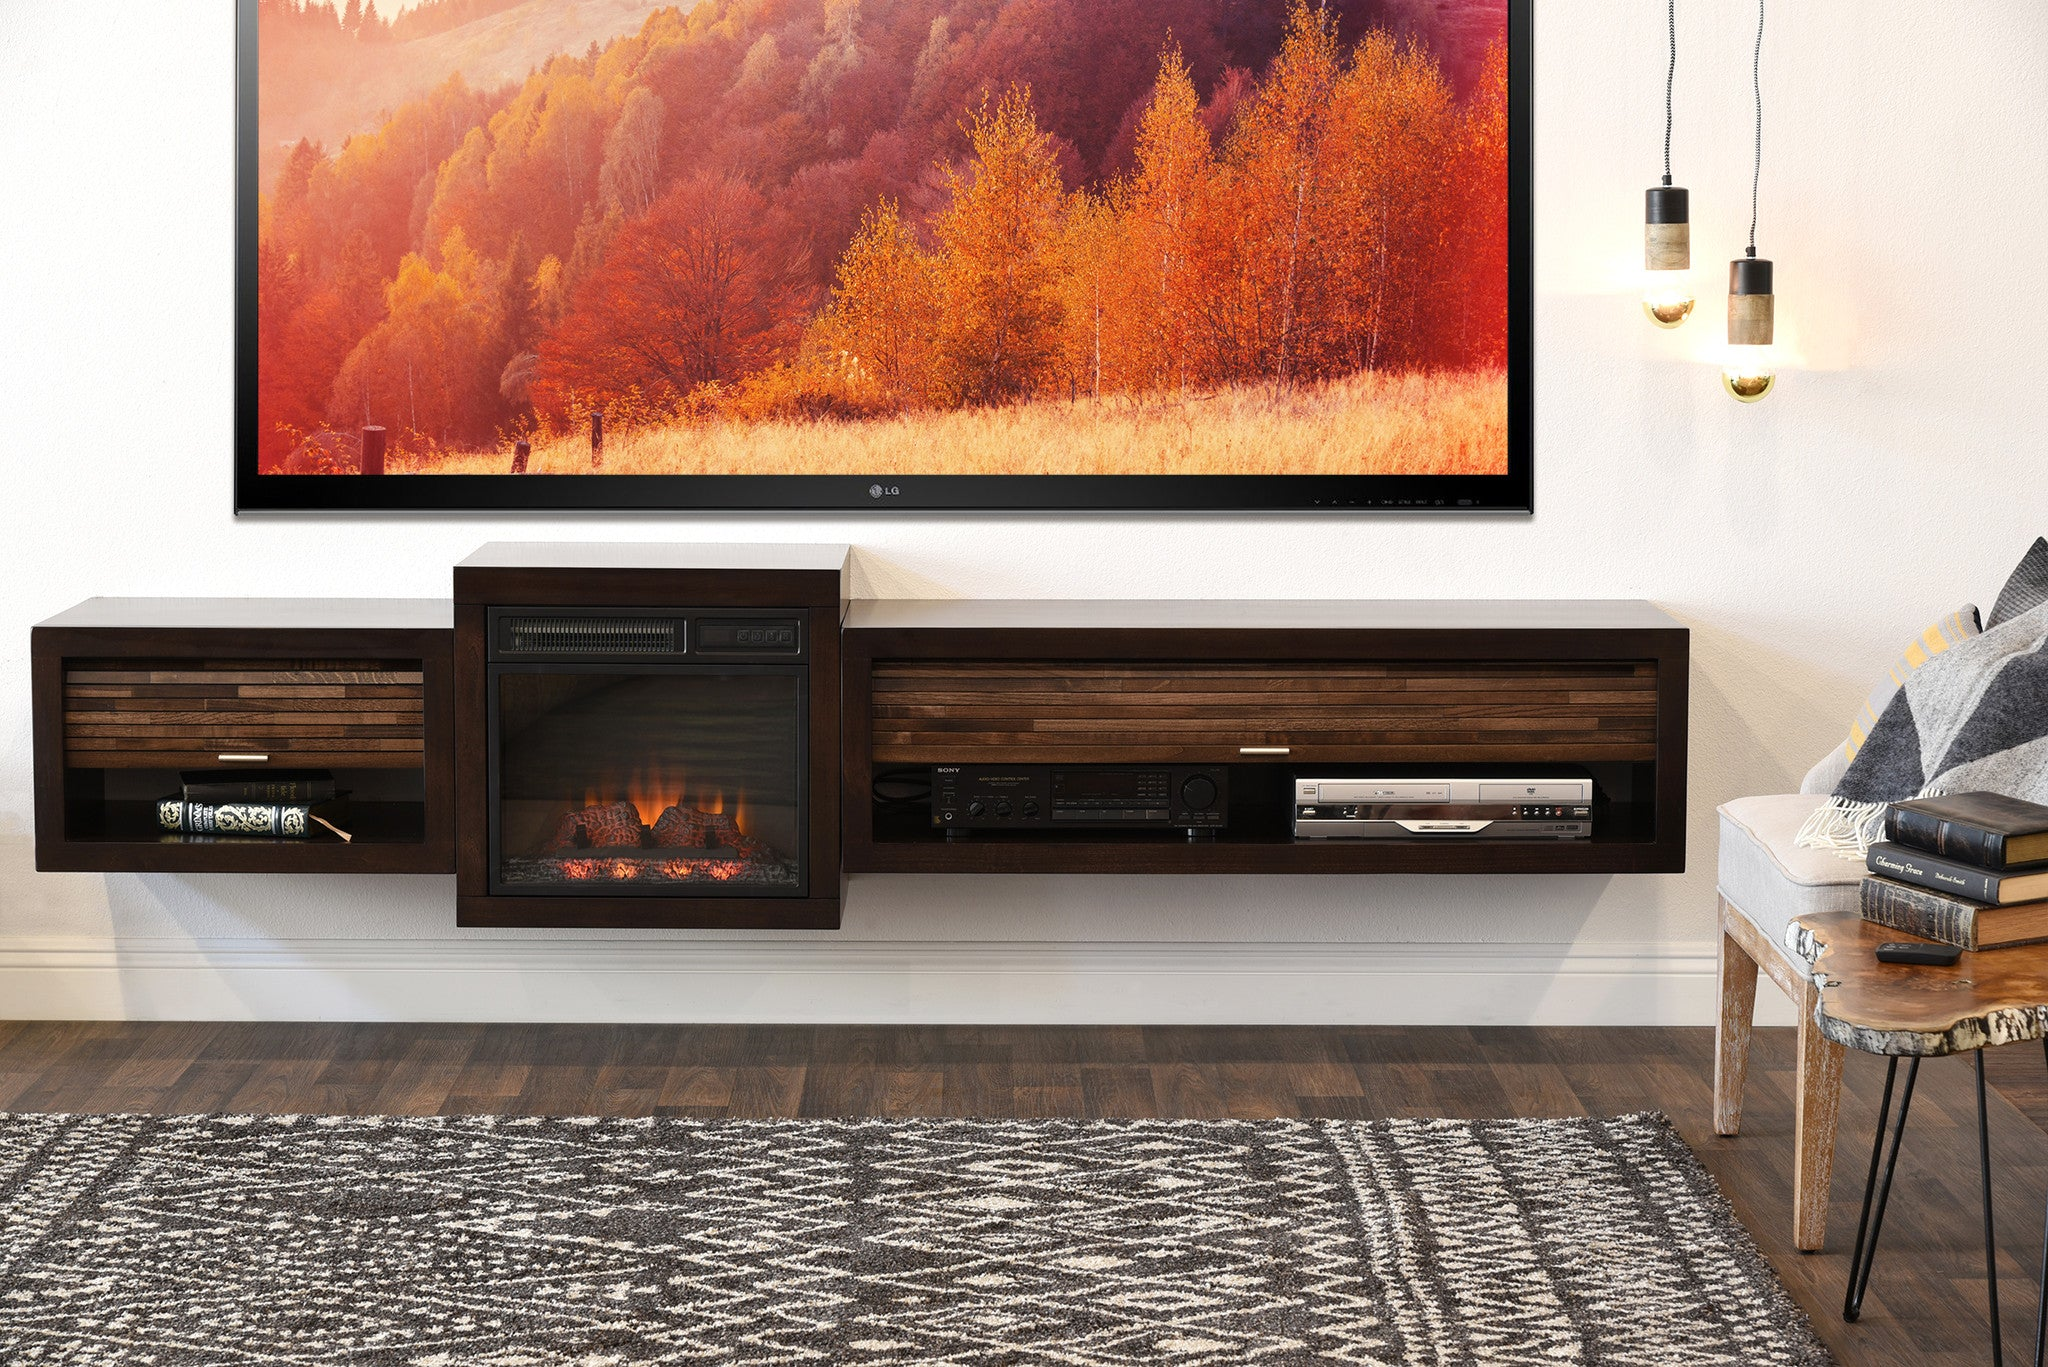 Best Electric Space Heater For Bedroom Decorating Interior Of Your Wiring Stelpro Baseboard Fireplace Tv Stands Floating Wall Mount Consoles Woodwaves